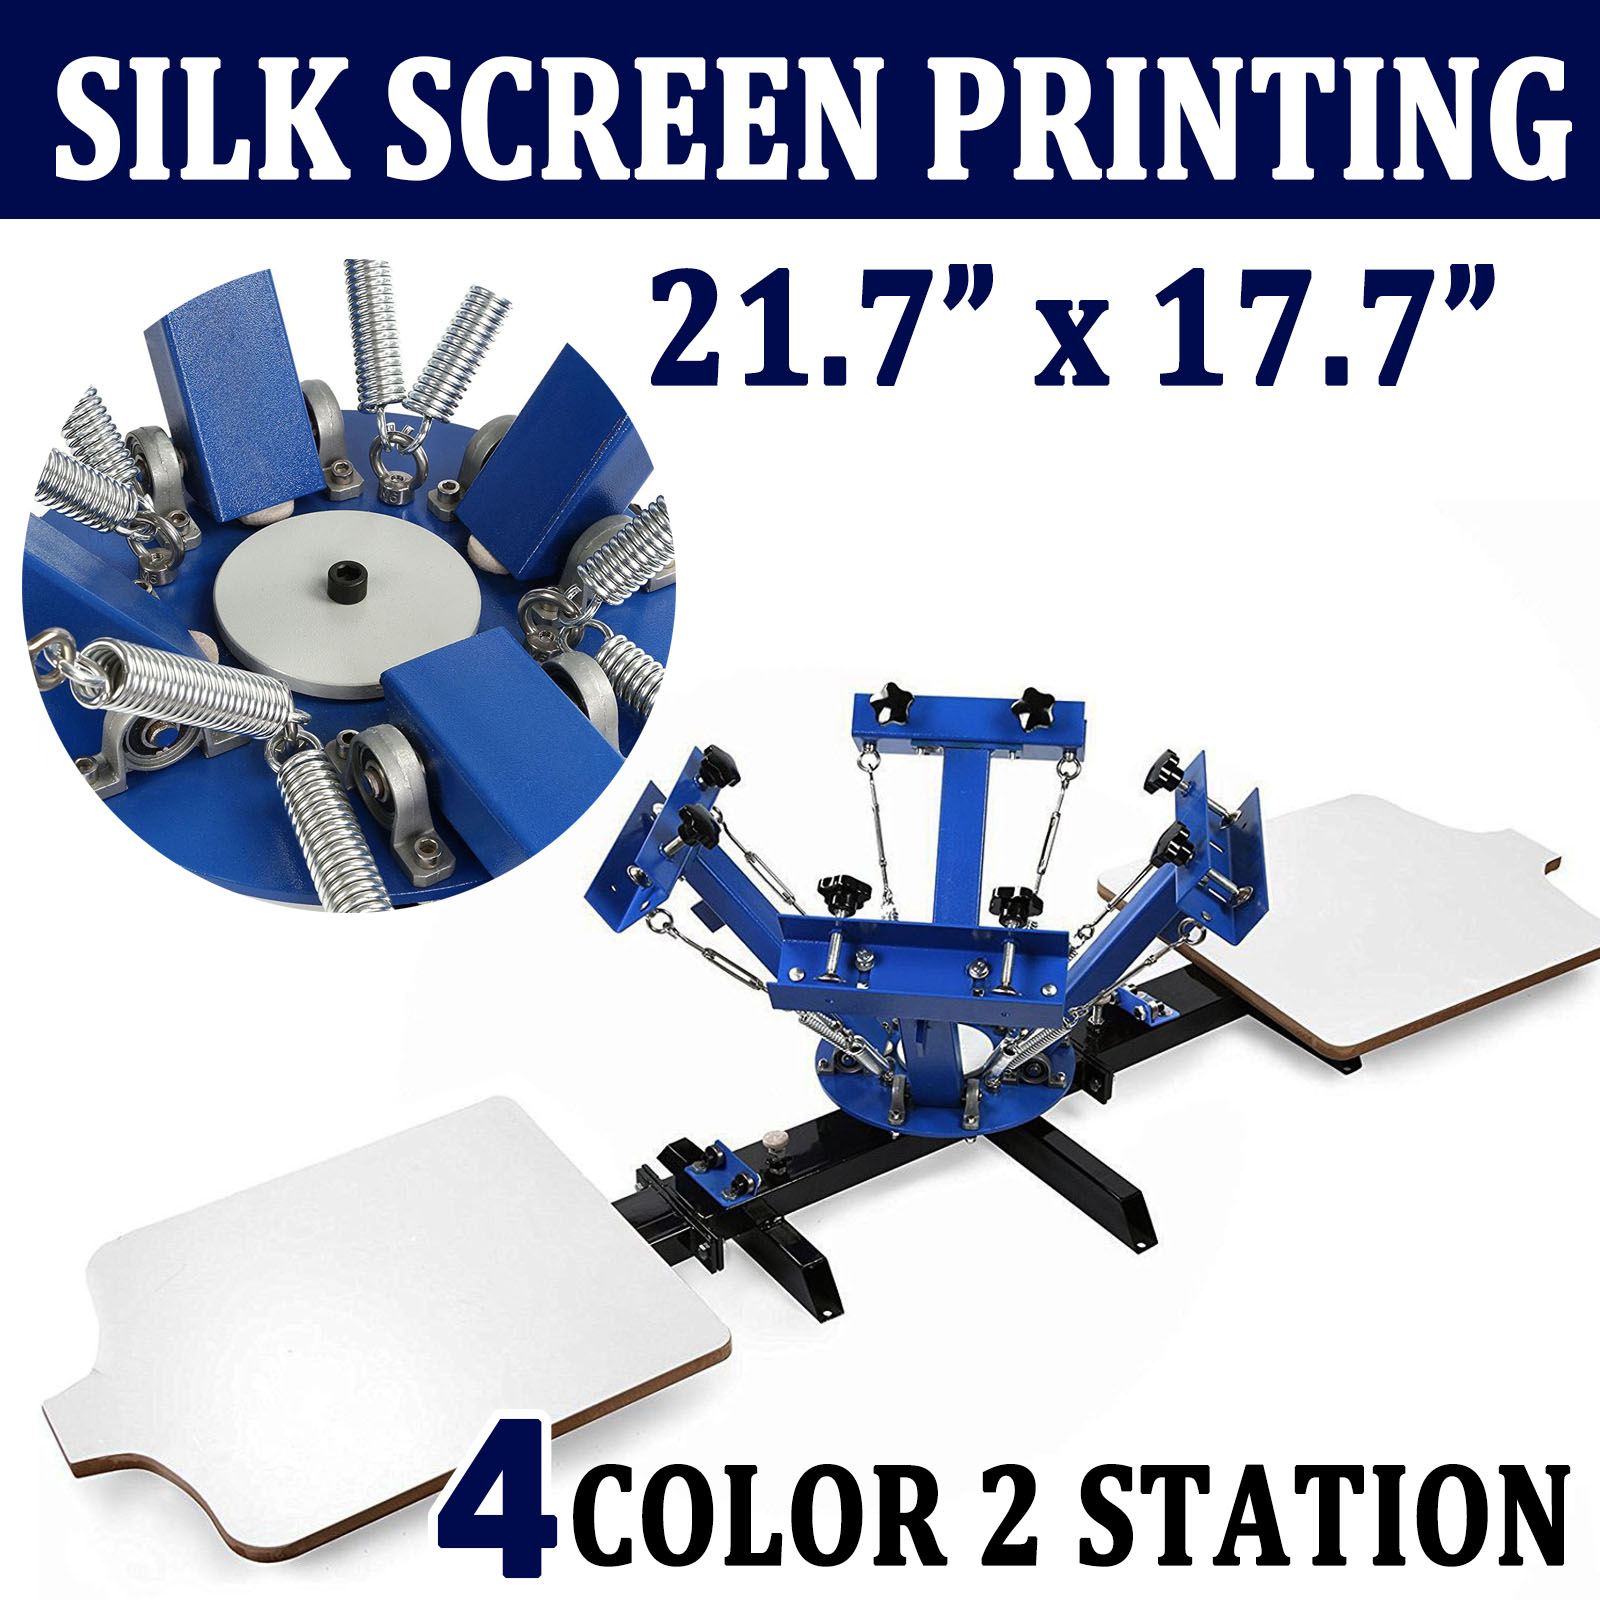 6545f7e3 Details about 4 Color 2 Station Silk Screen Printing Machine Press  Equipment T-Shirt DIY